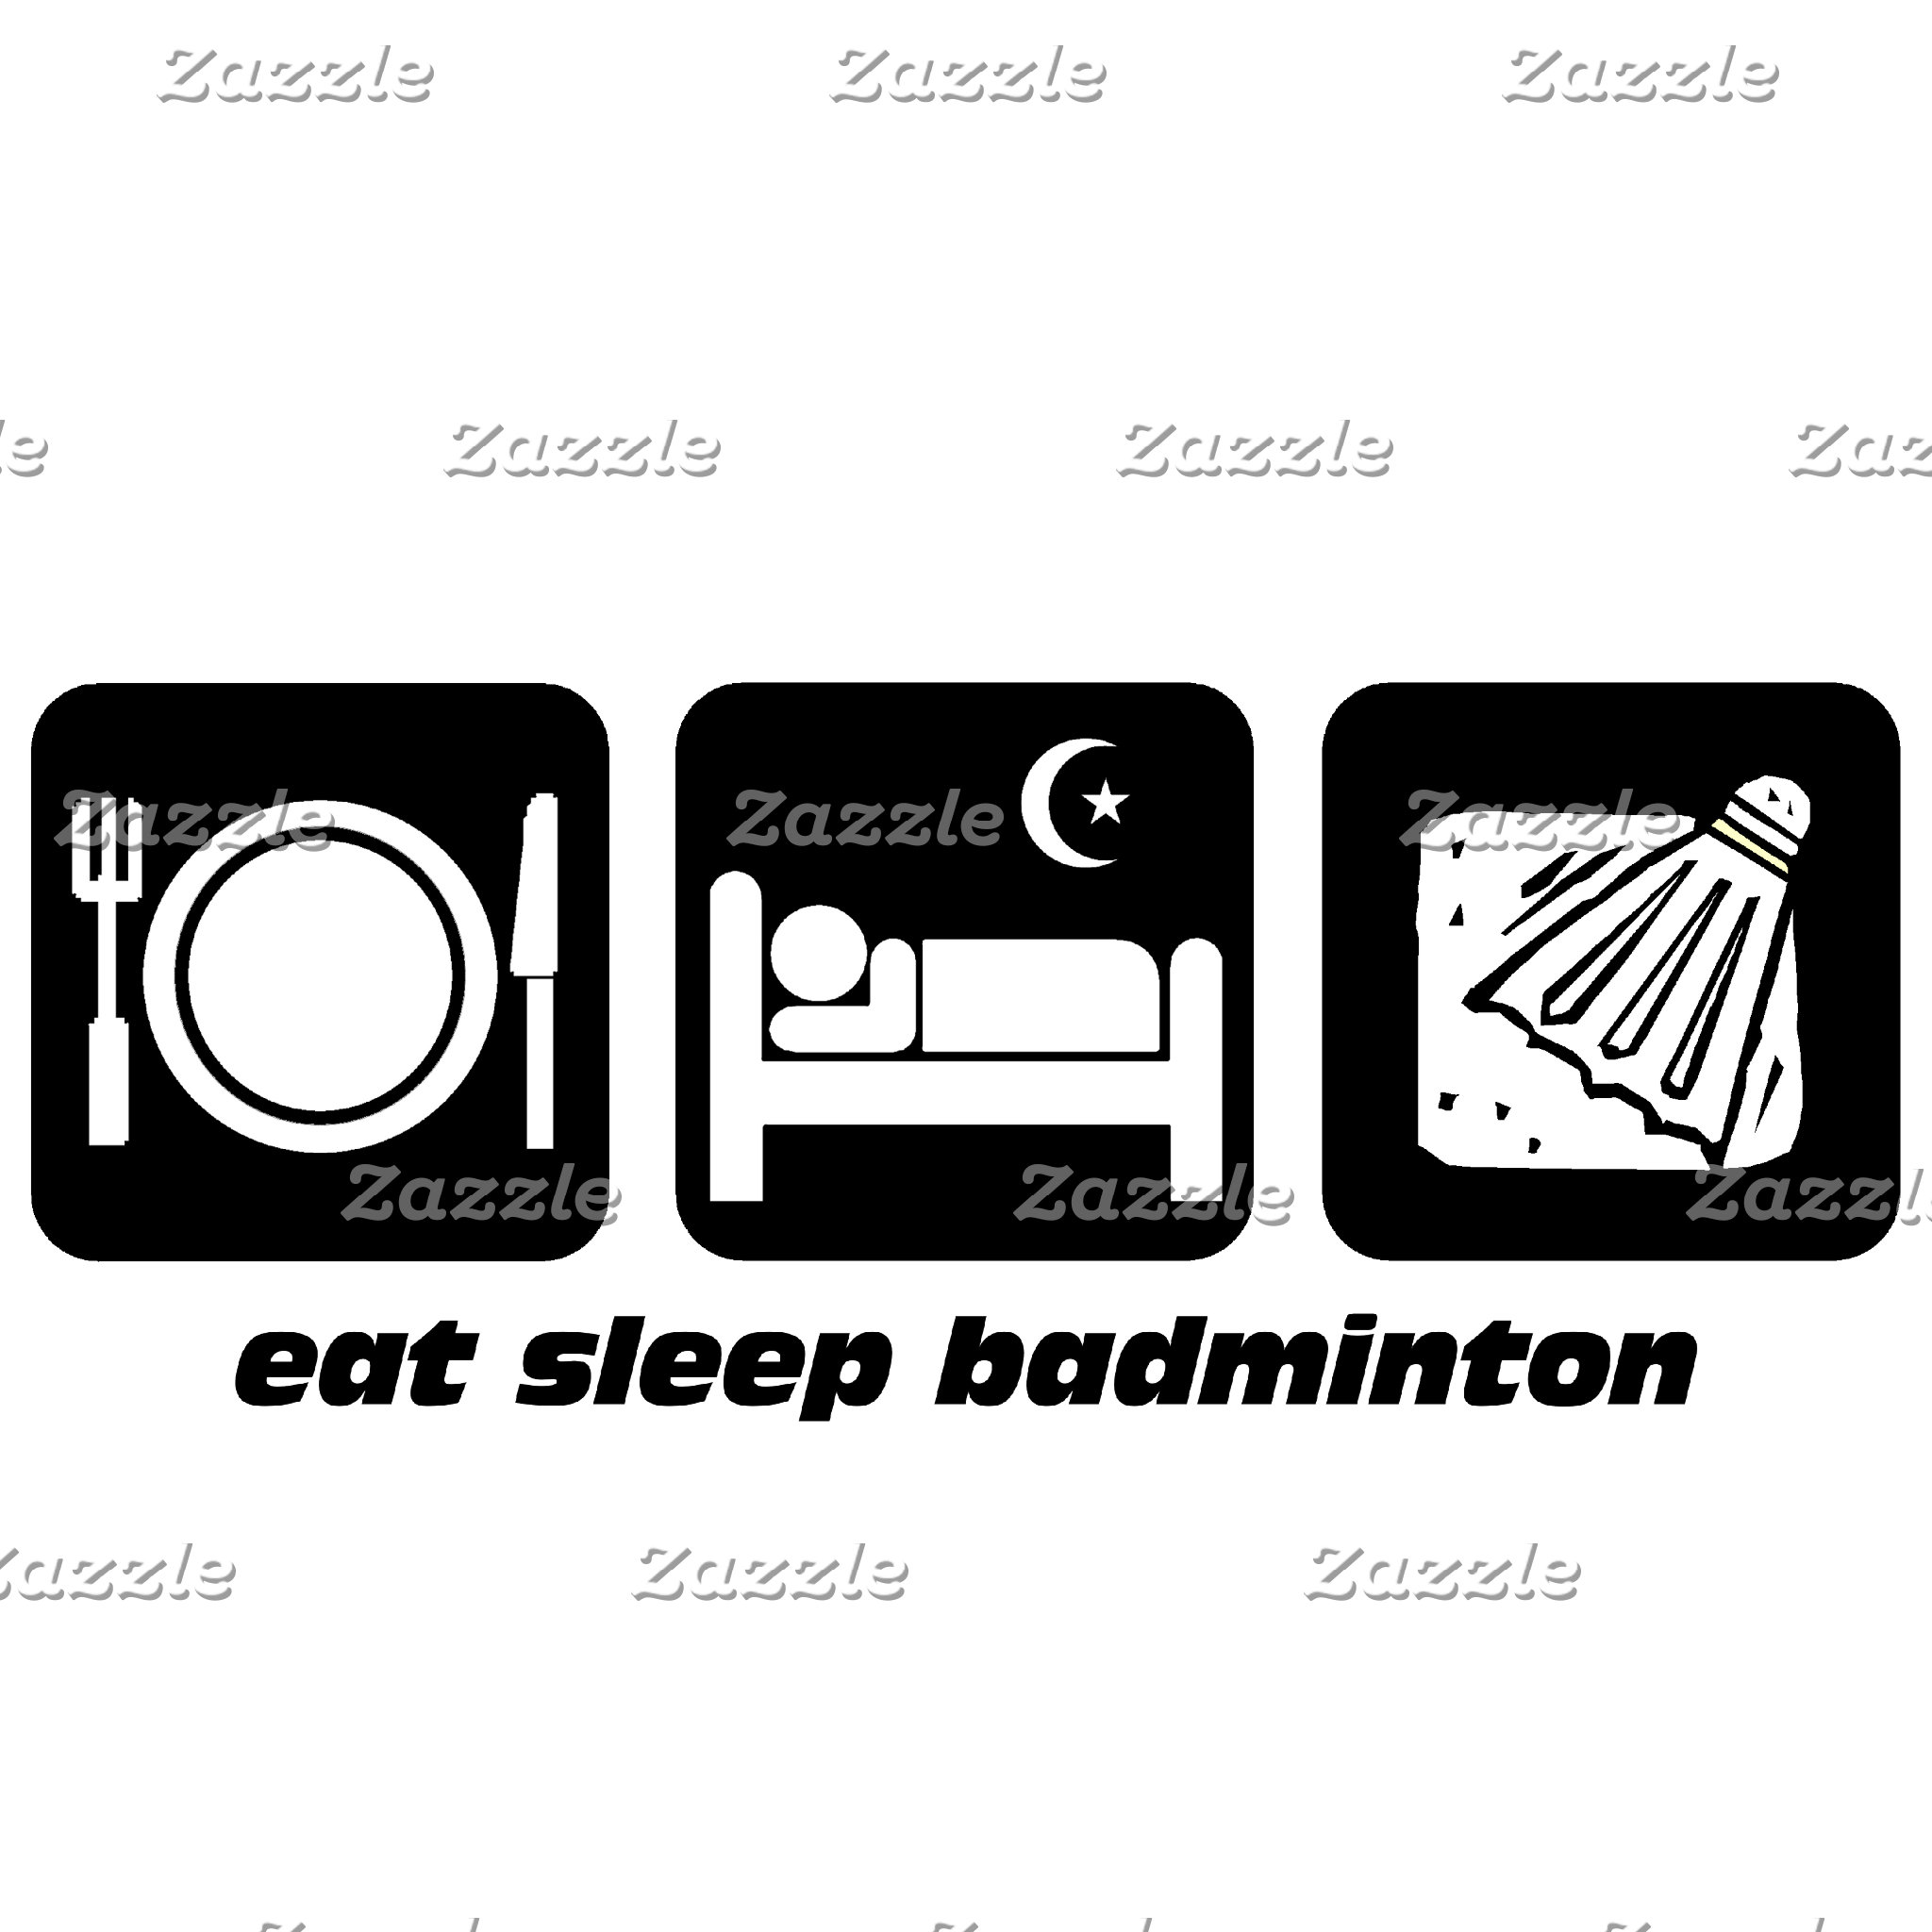 eat sleep badminton